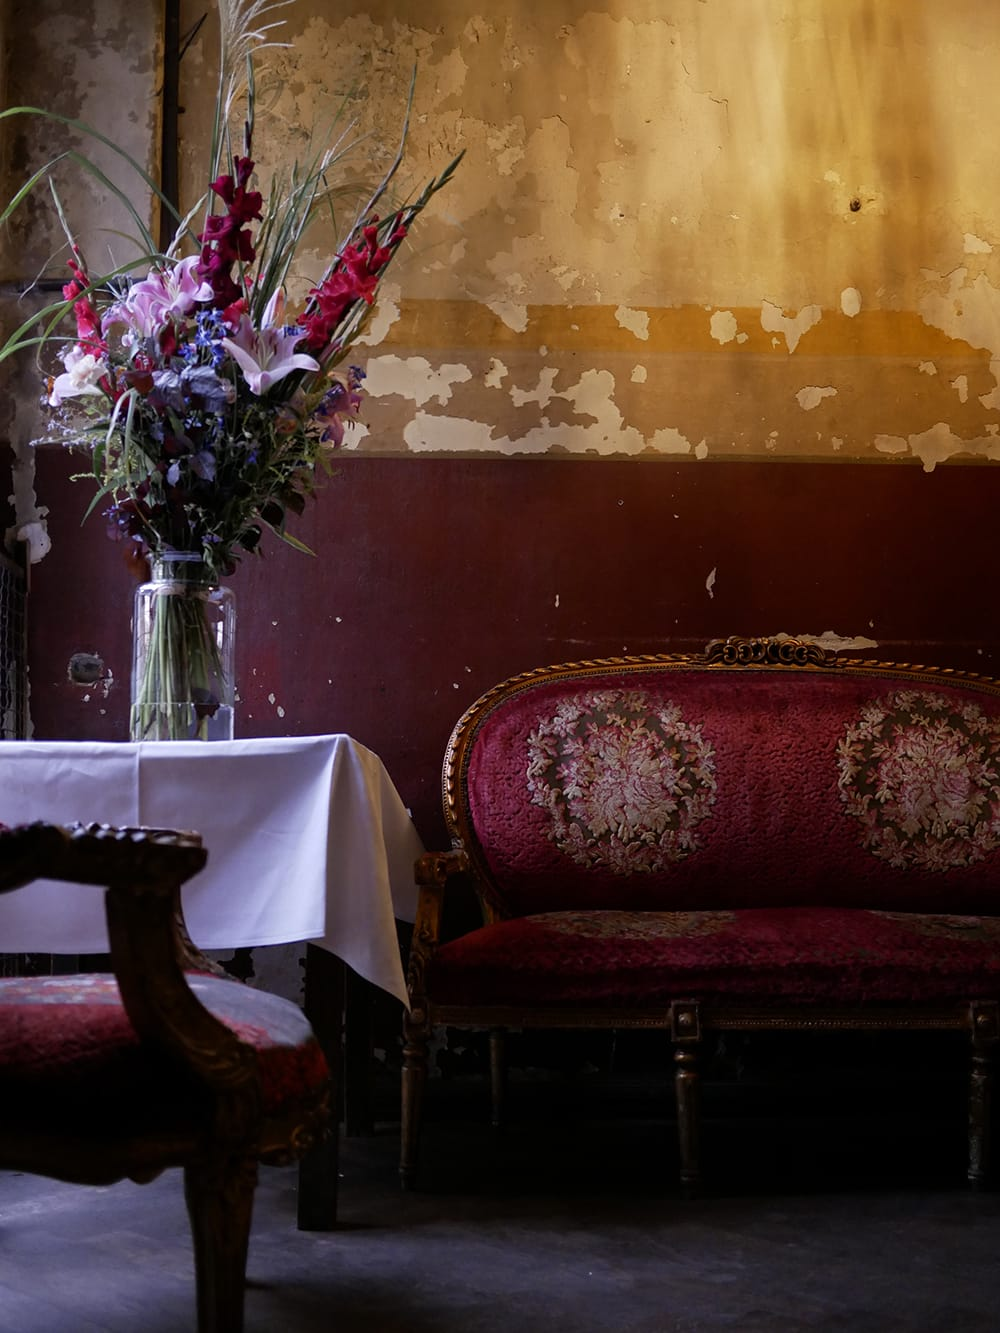 Old, vintage interior of a entryway to ballroom with classy bench and big bouquet of flowers. Berlin, Germany